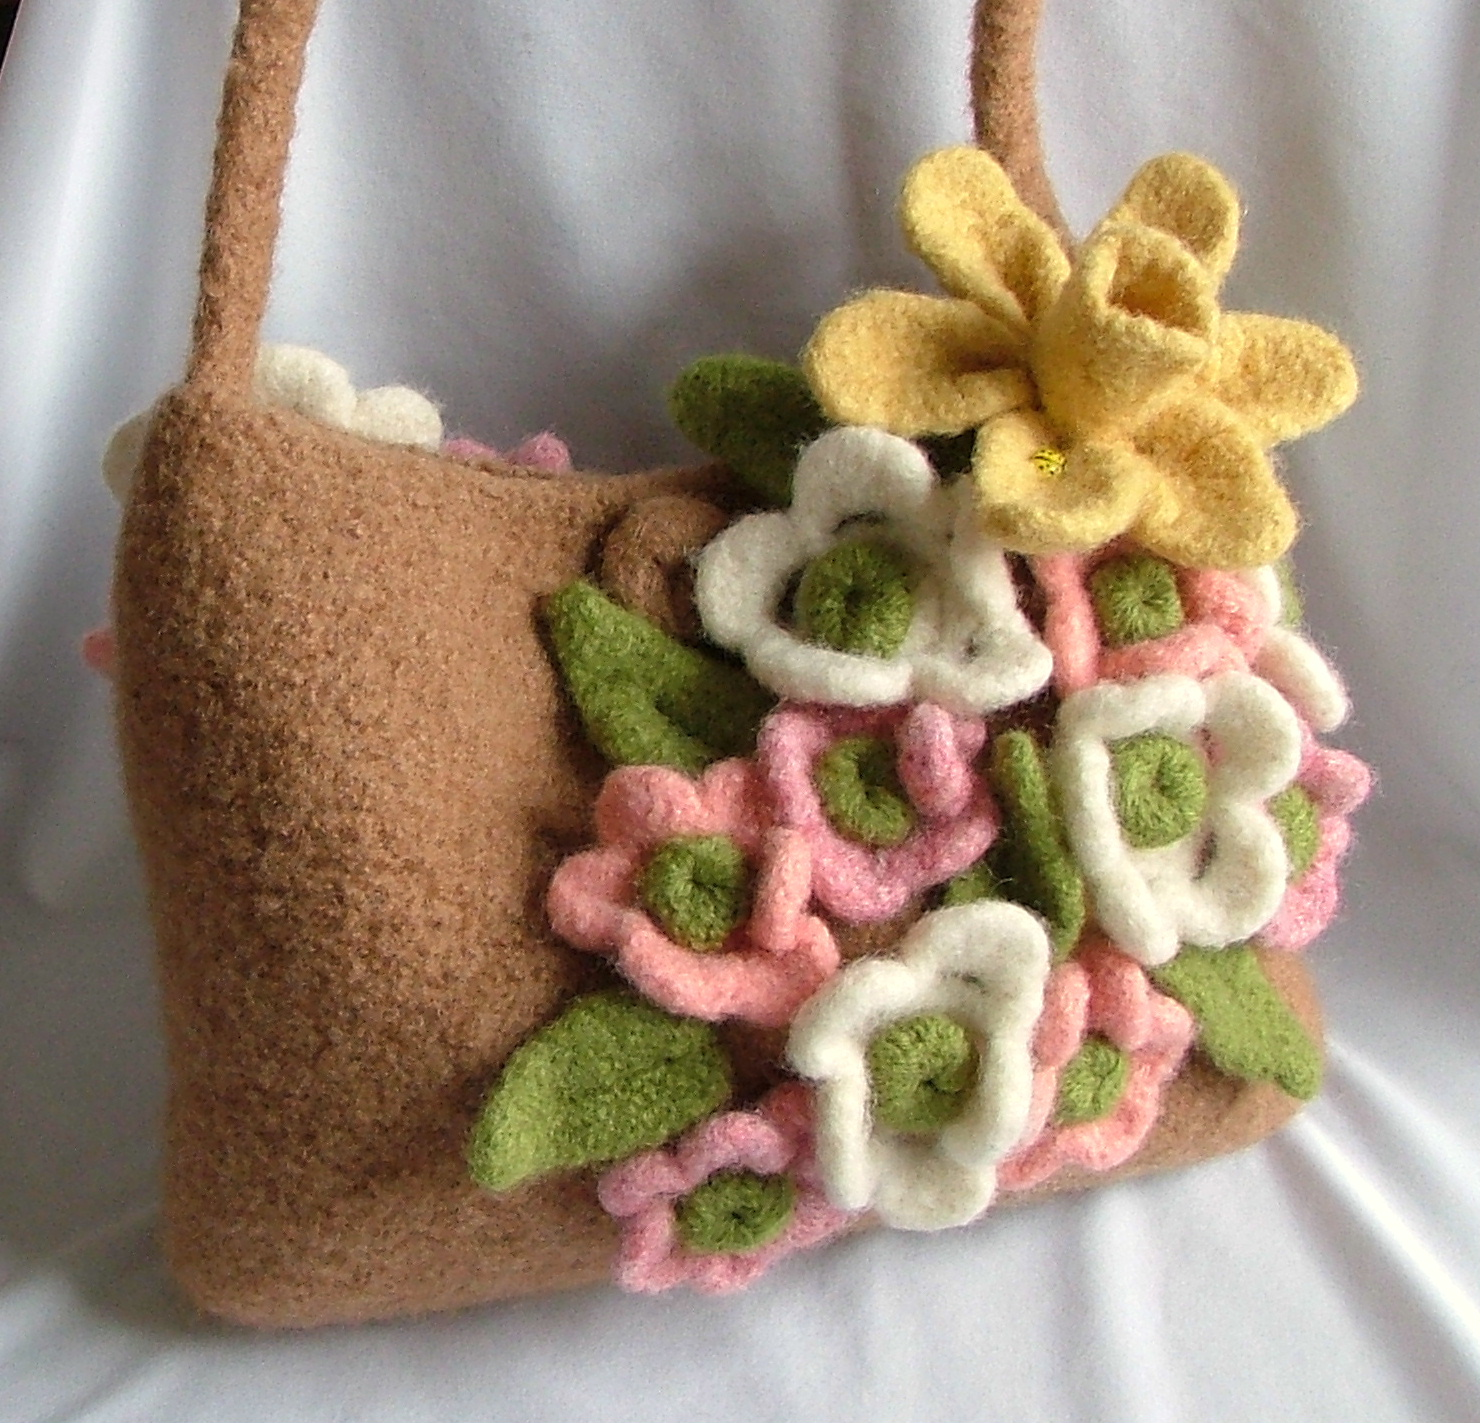 Woolen Crochet Purse : Felted wool crocheted purses